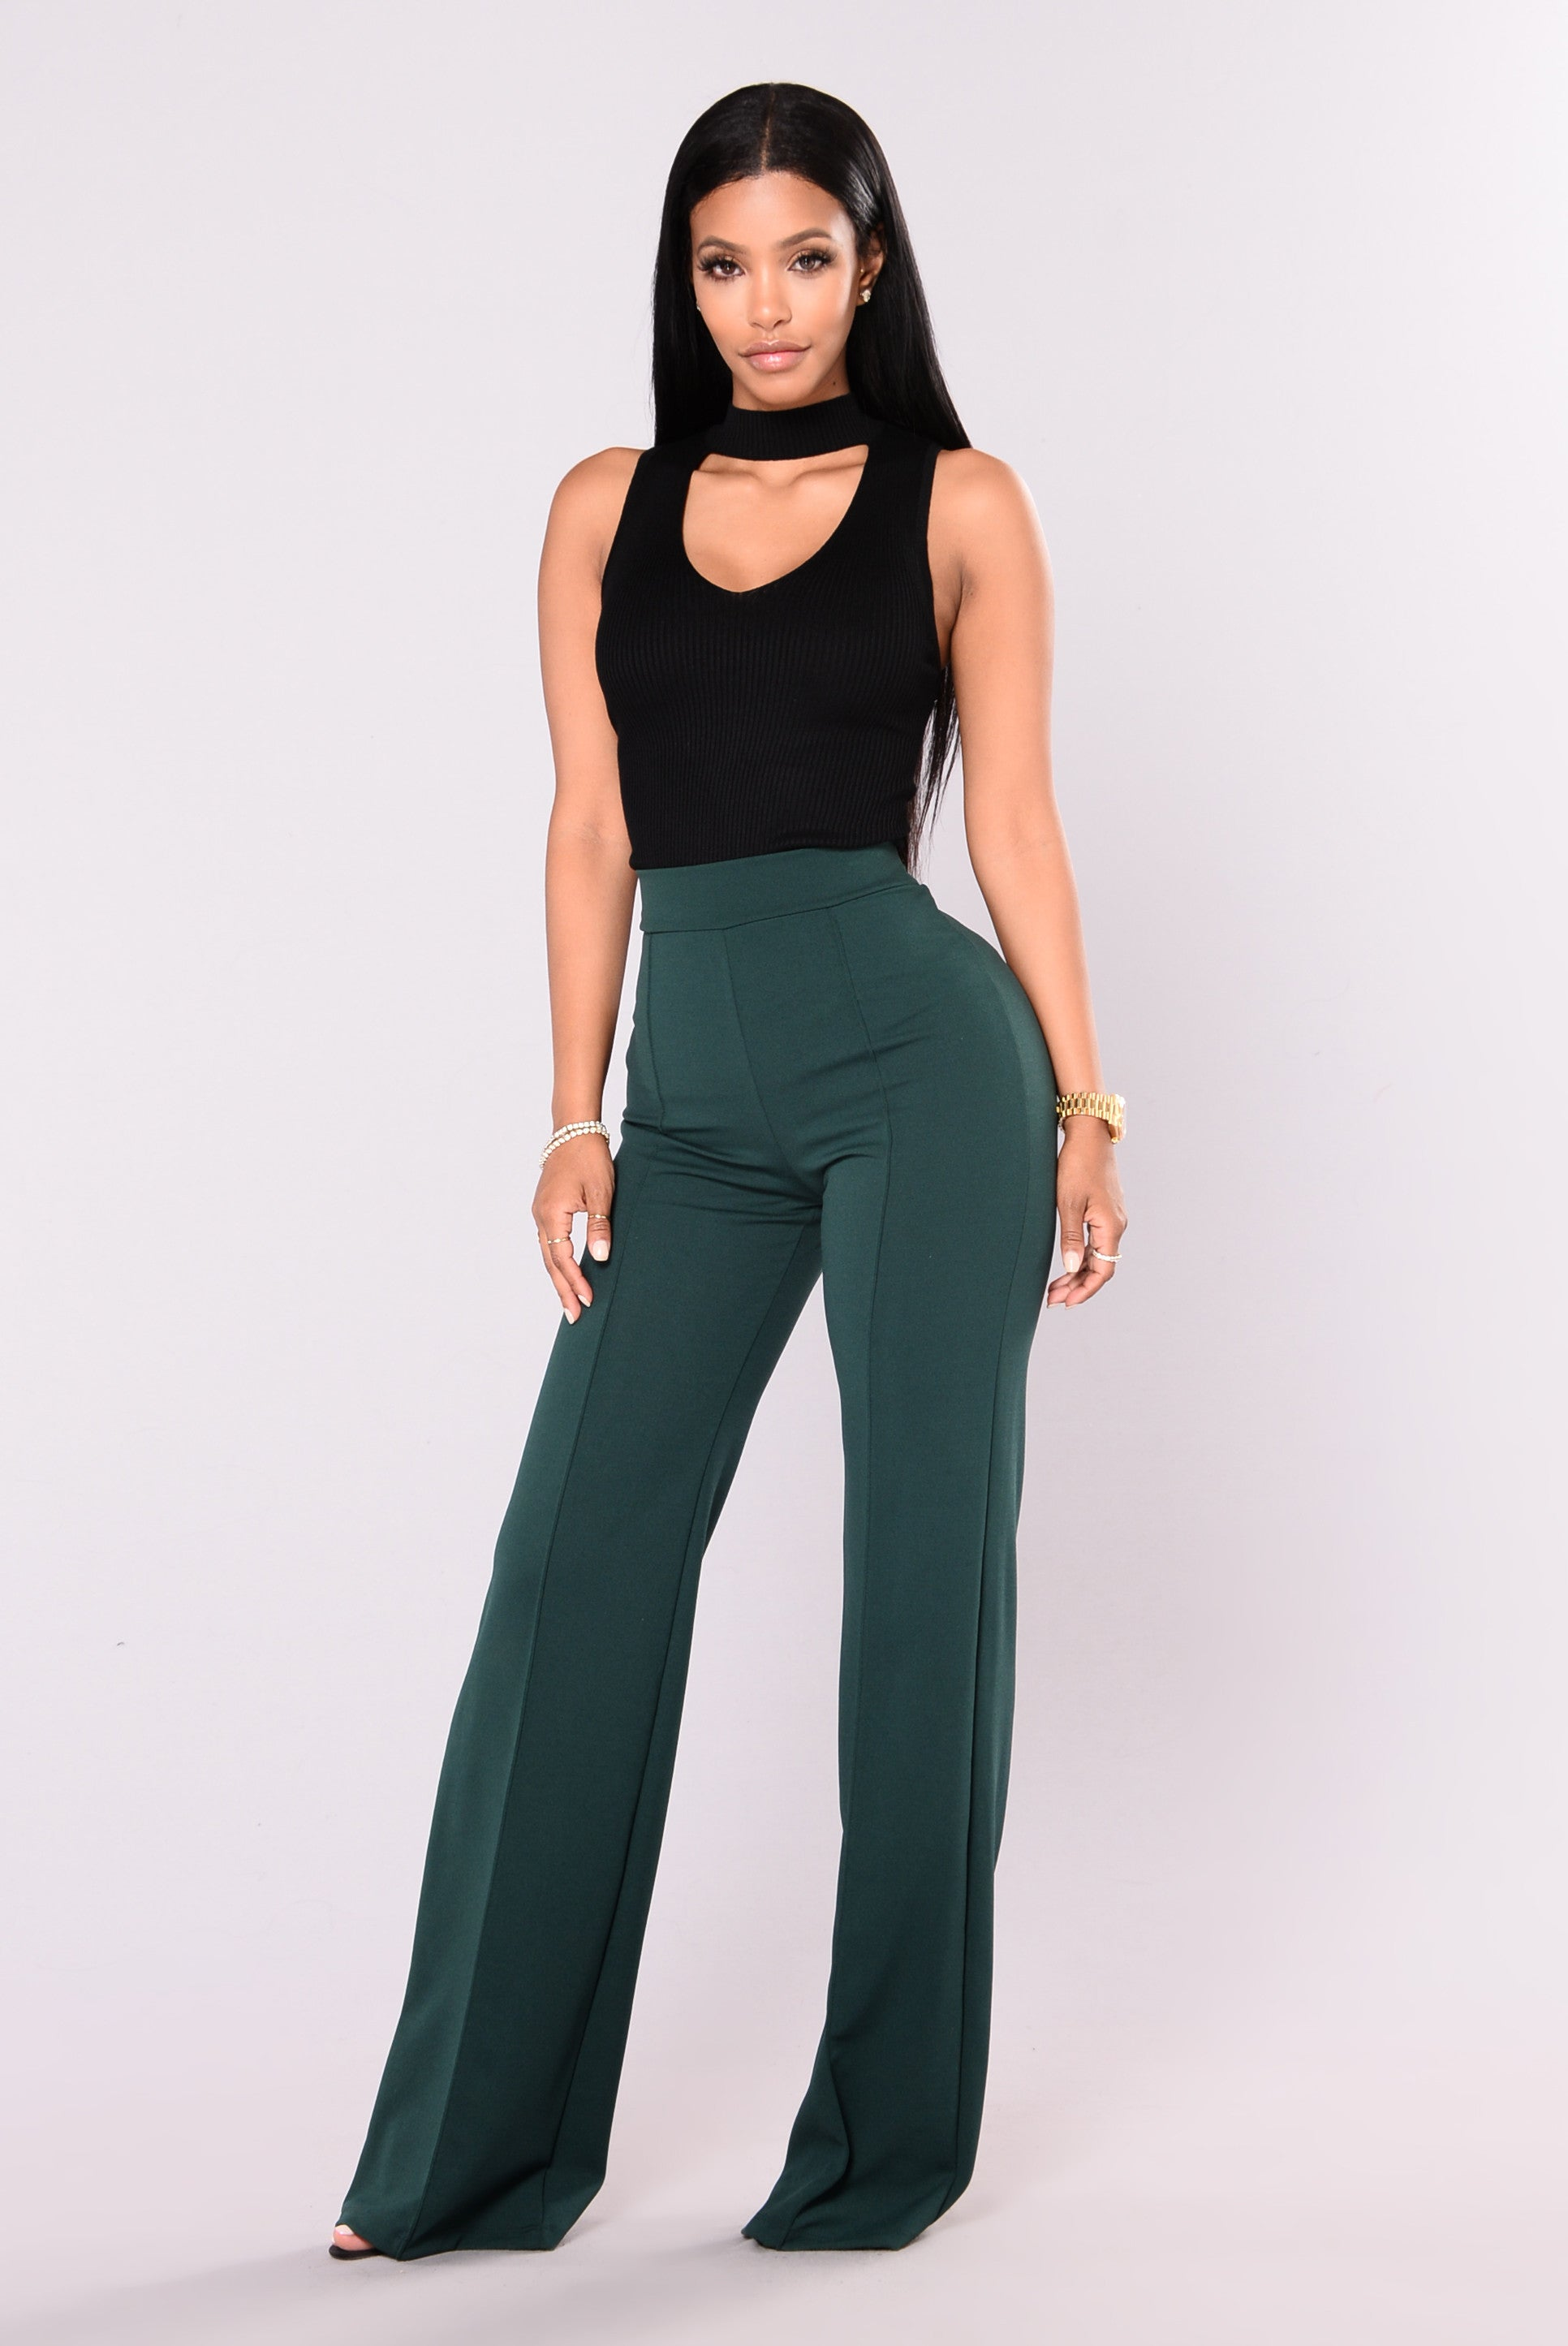 Free shipping BOTH ways on pants womens high waisted, from our vast selection of styles. Fast delivery, and 24/7/ real-person service with a smile. Click or call